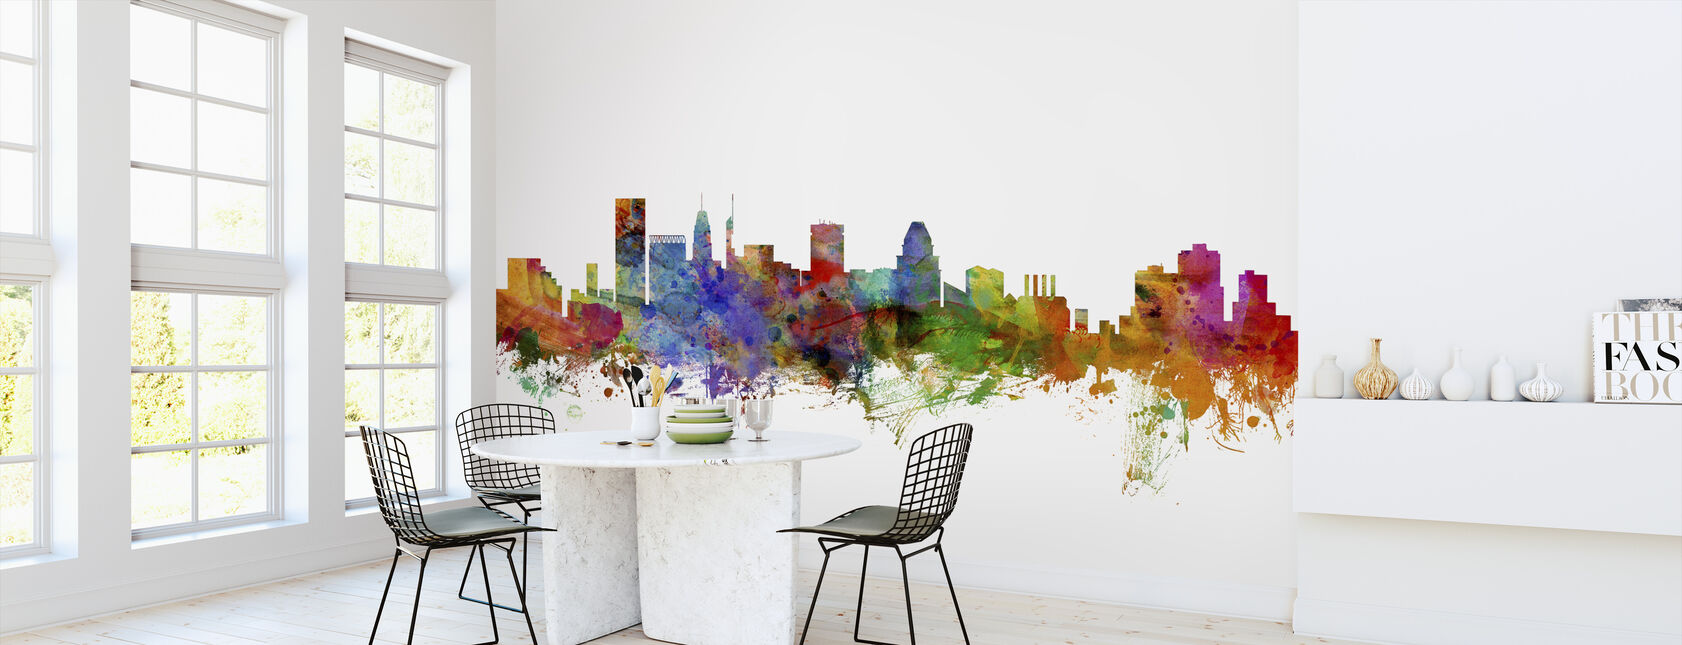 Baltimore Maryland Skyline - Wallpaper - Kitchen